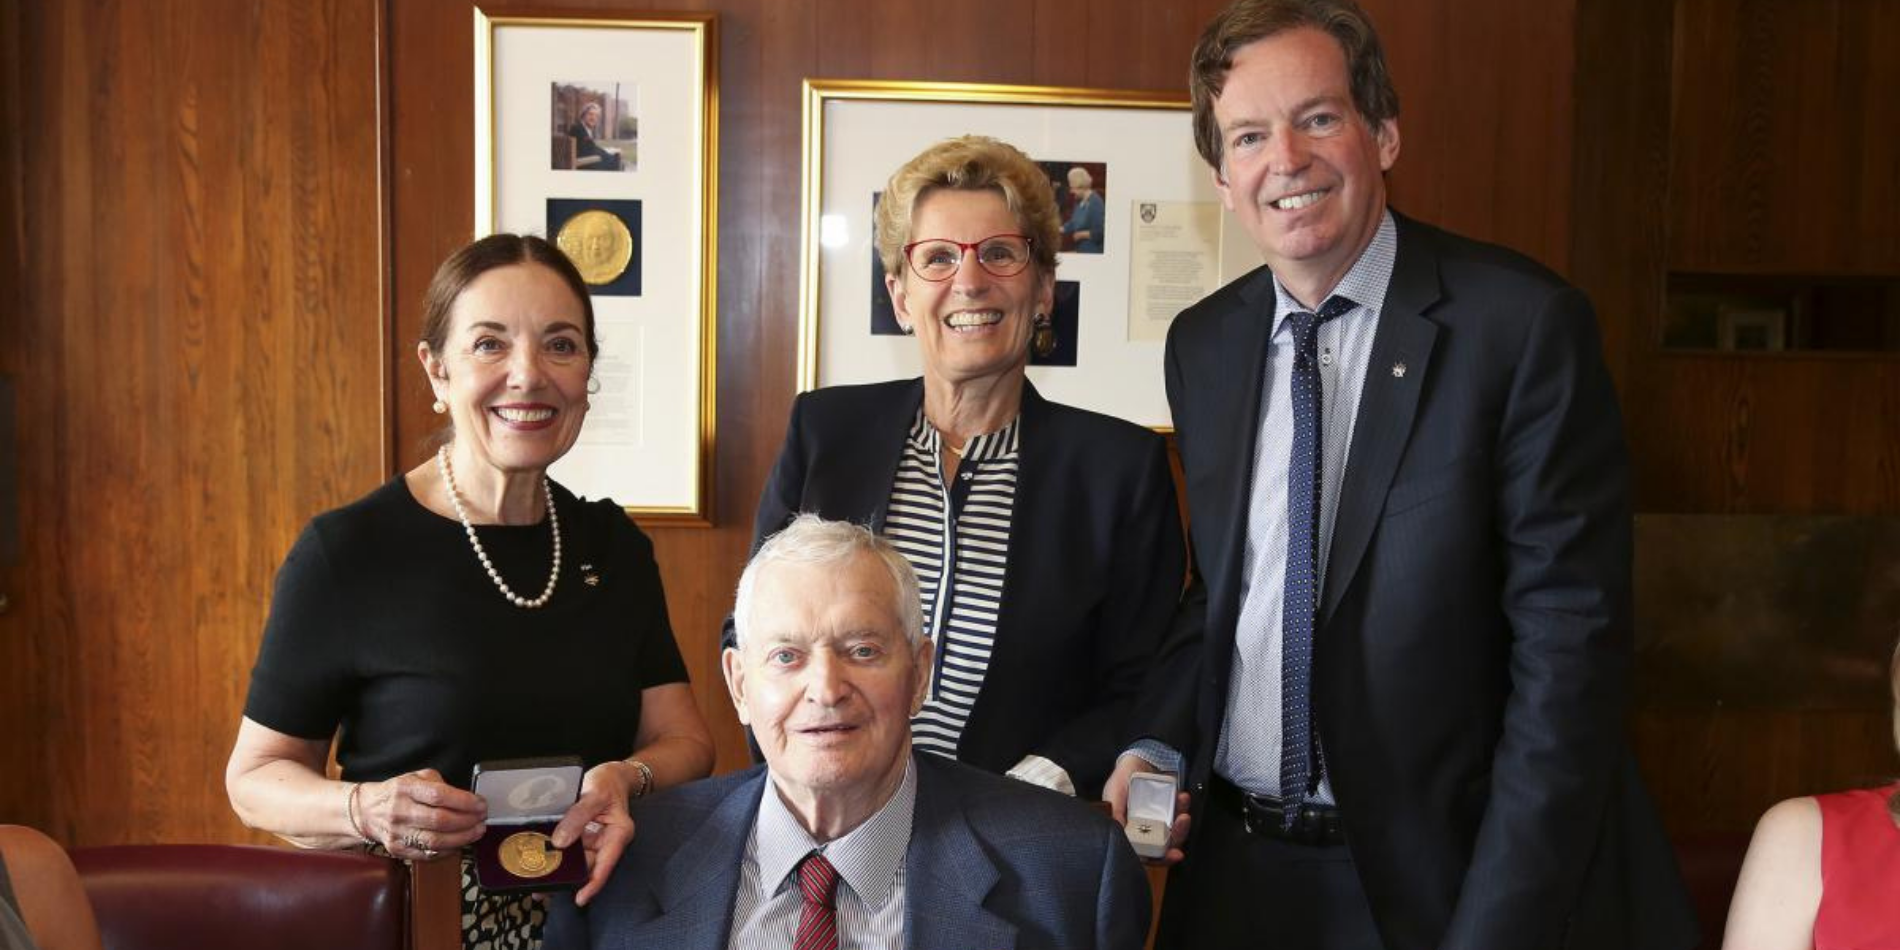 The Rt. Hon. John Turner receives a medal from Premier Kathleen Wynne and John Geiger, CEO of The Royal Canadian Geographical Society.